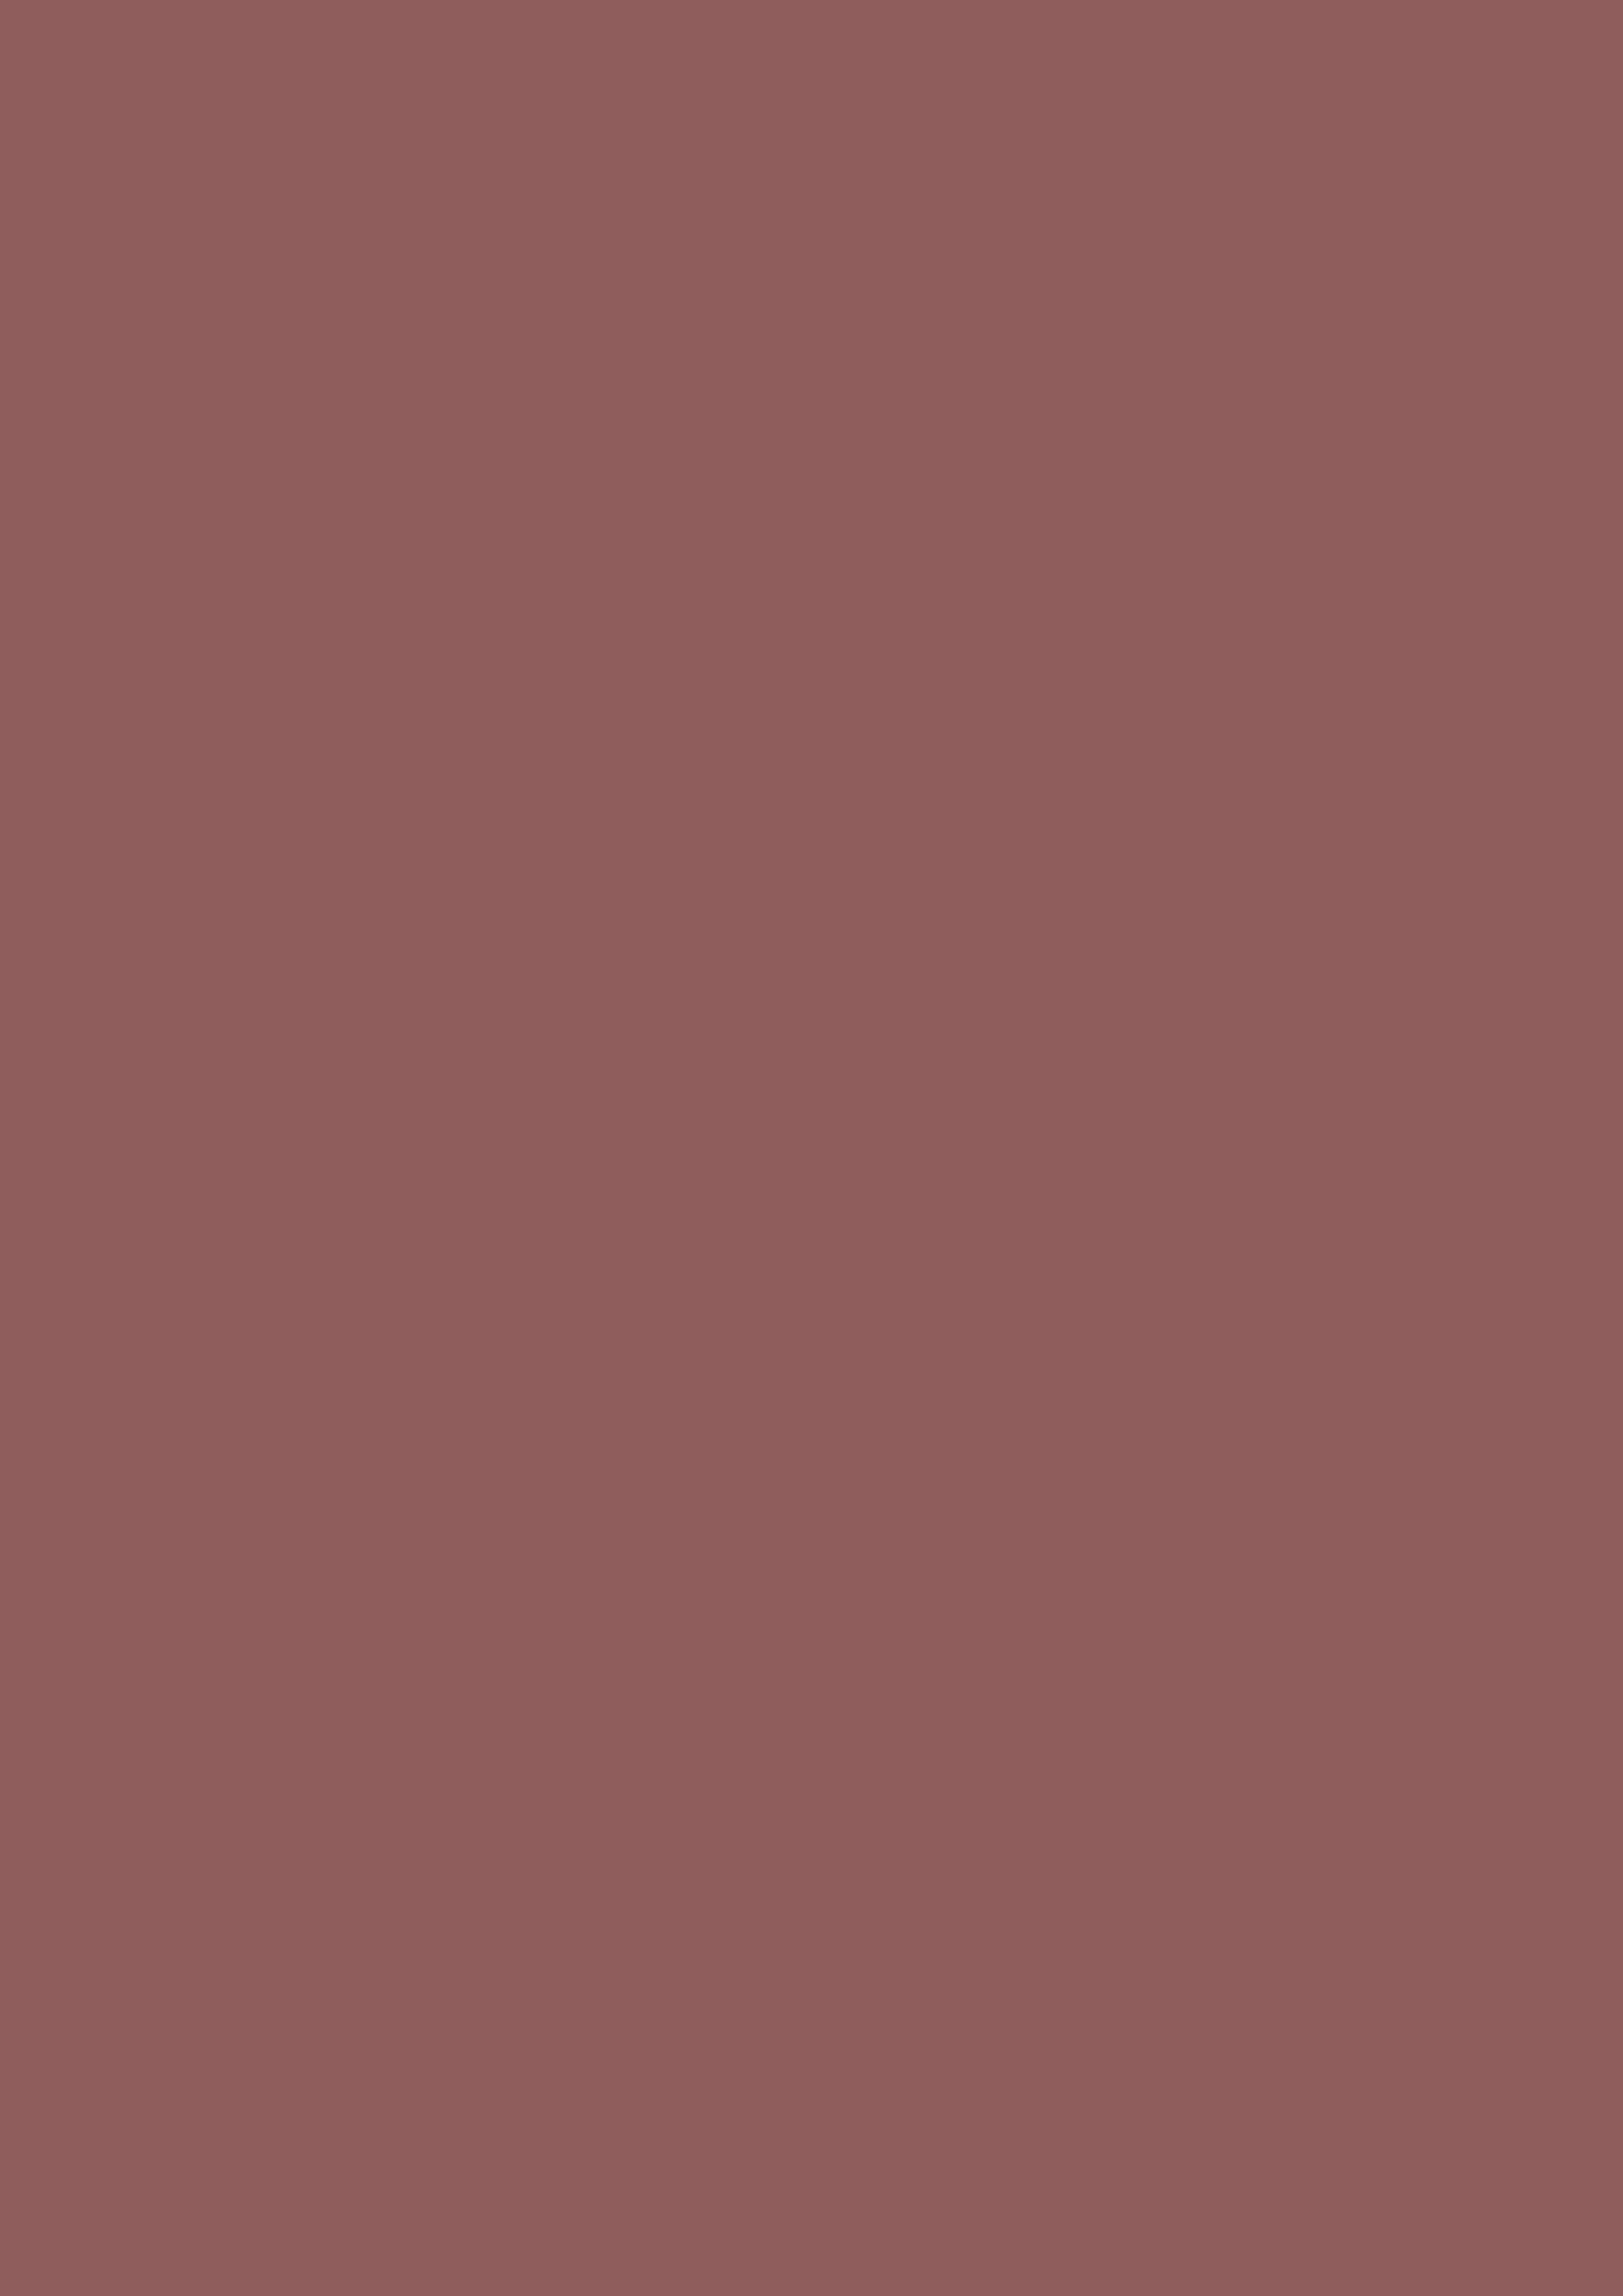 2480x3508 Rose Taupe Solid Color Background